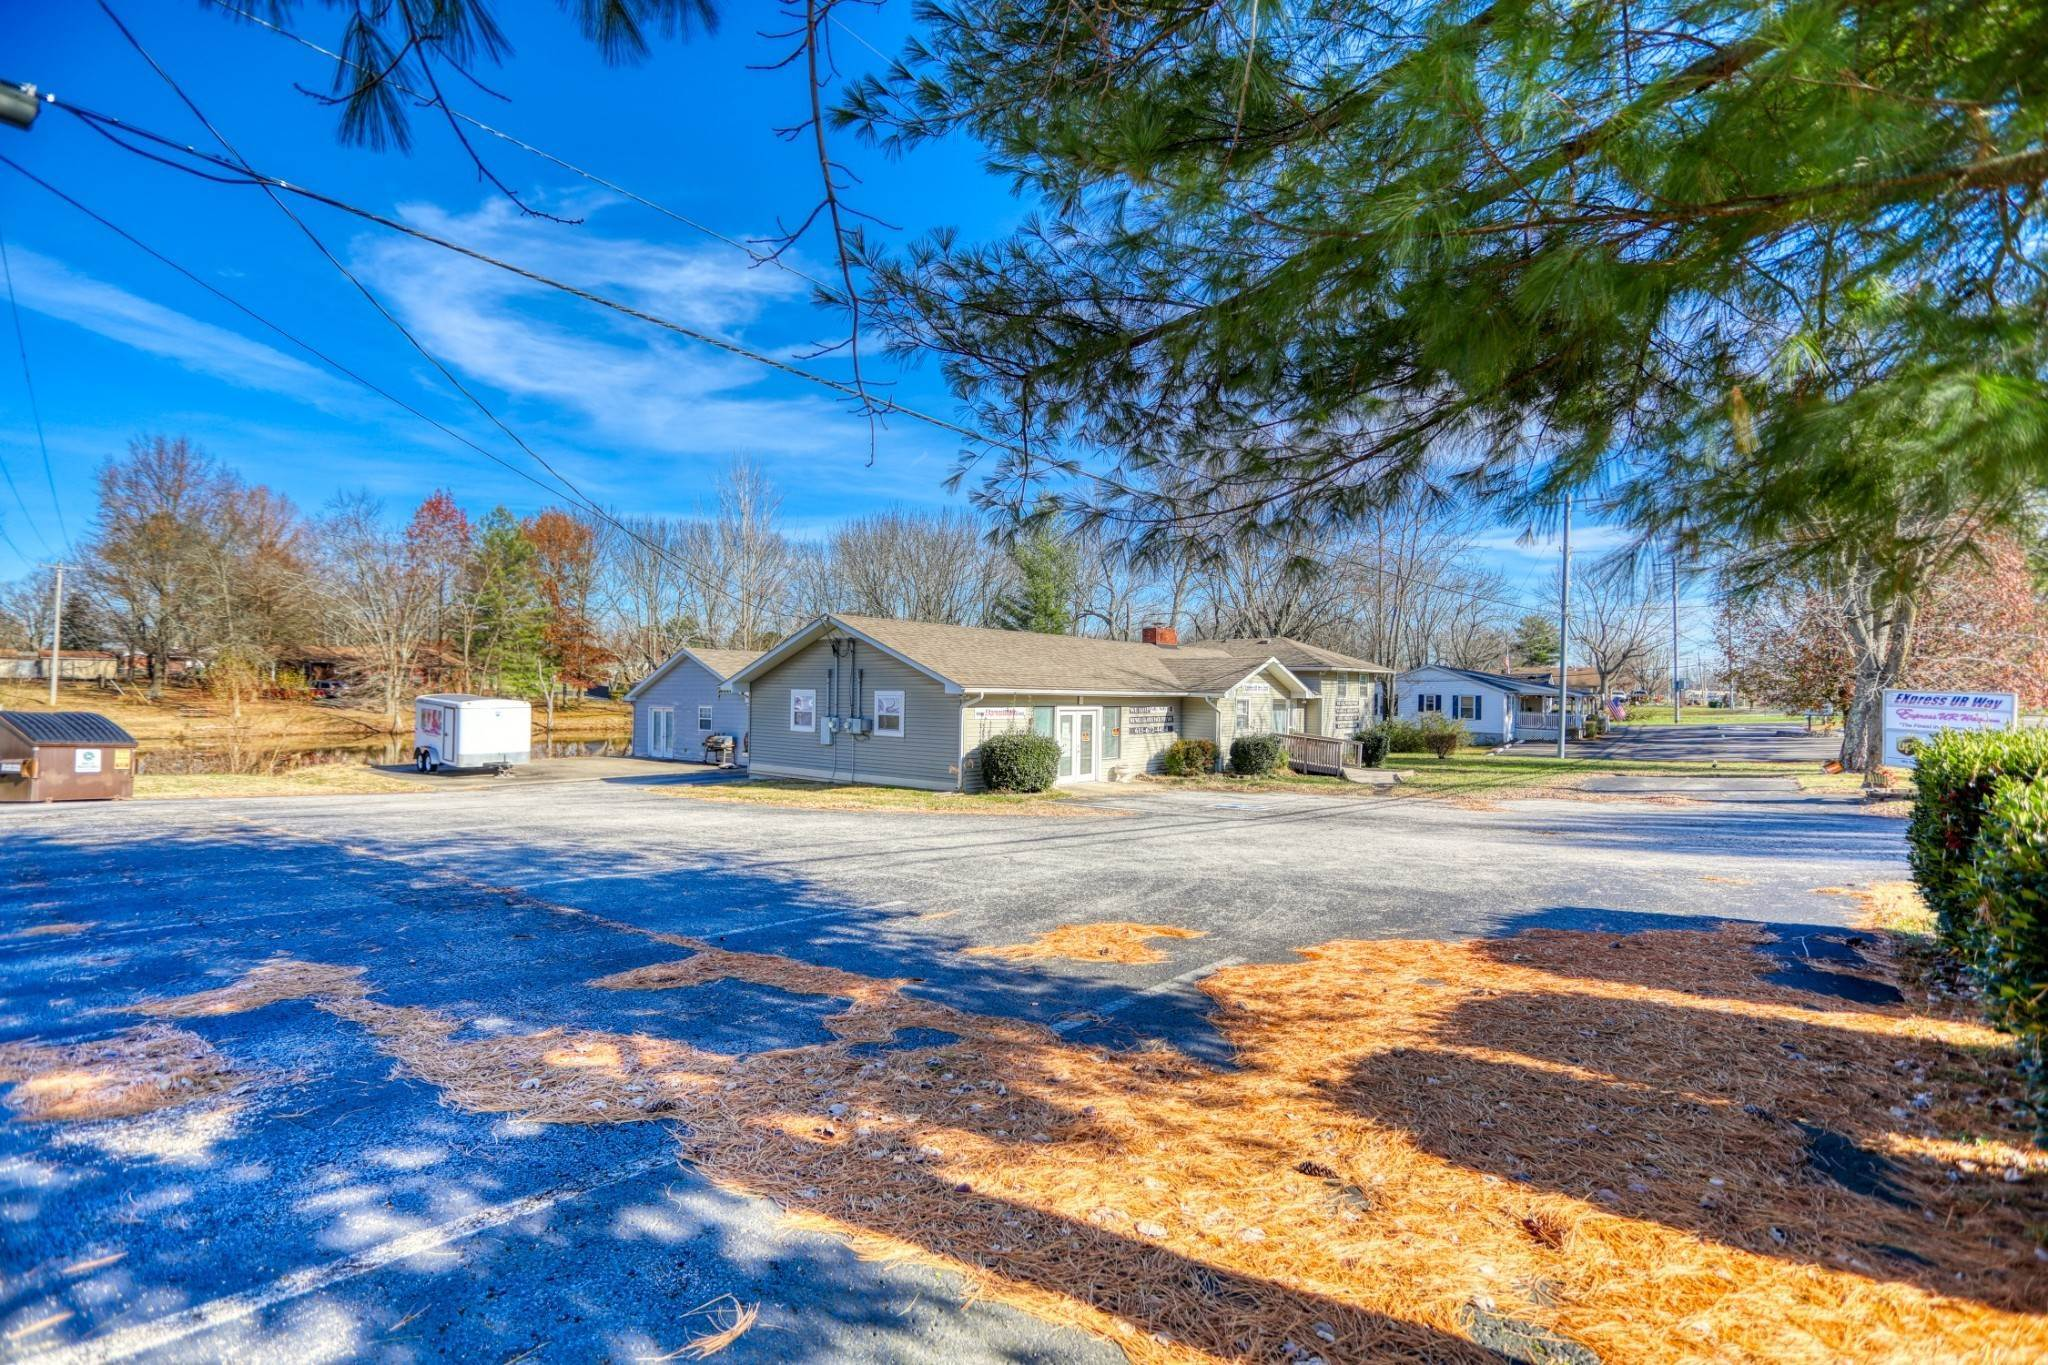 Commercial for Sale at 408 Highway 76, E White House, Tennessee 37188 United States